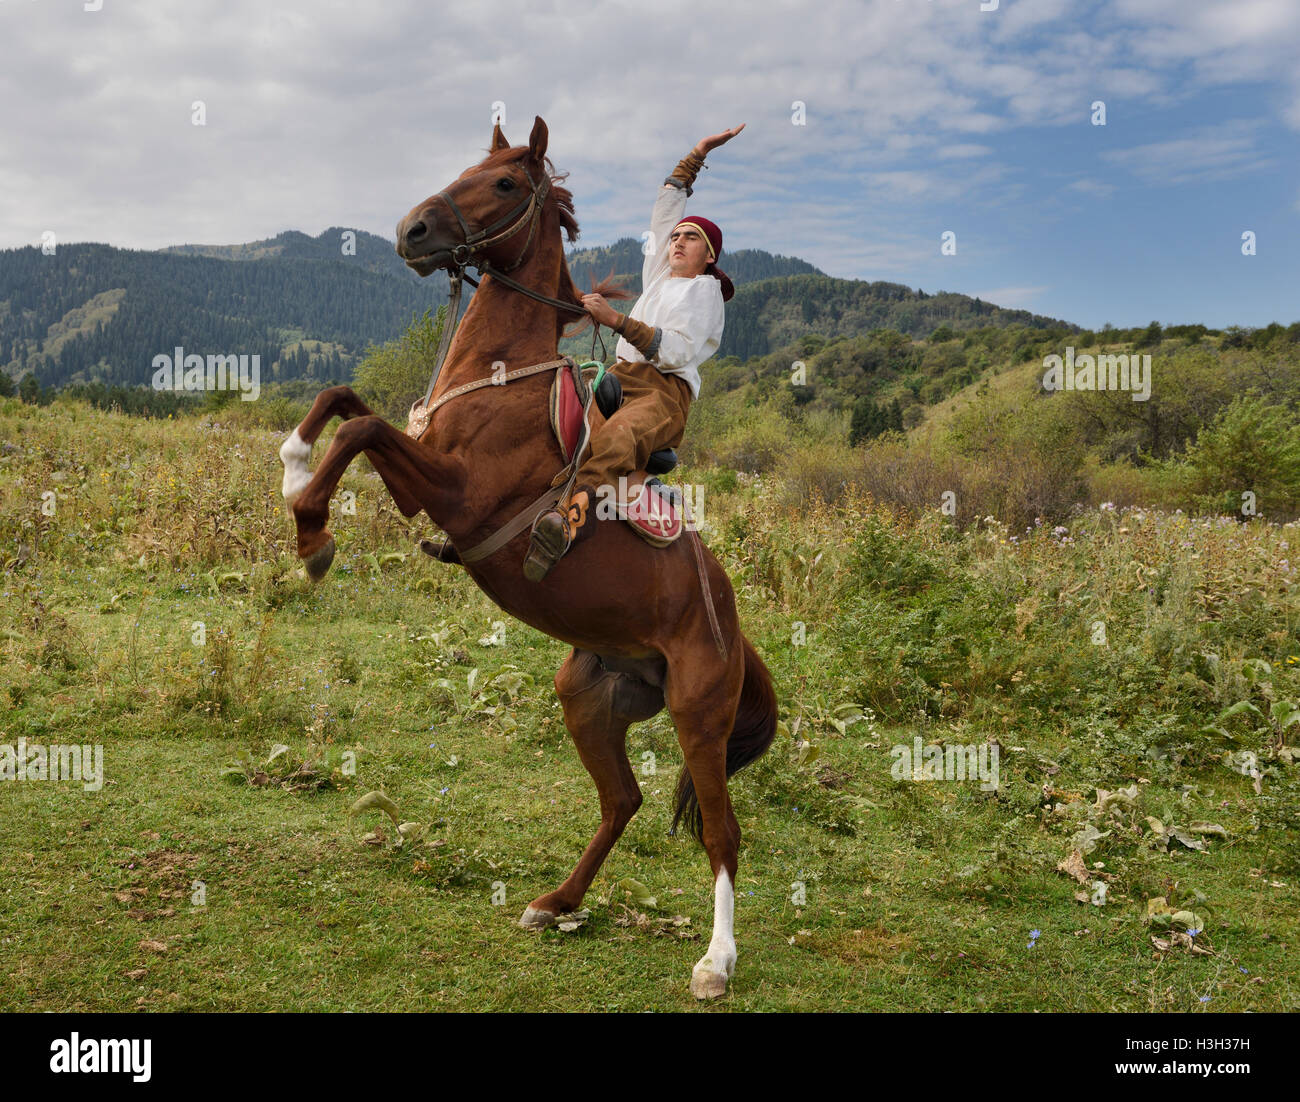 Kazakh horse rider with raised arm on rearing gelding in Huns village Kazakhstan - Stock Image